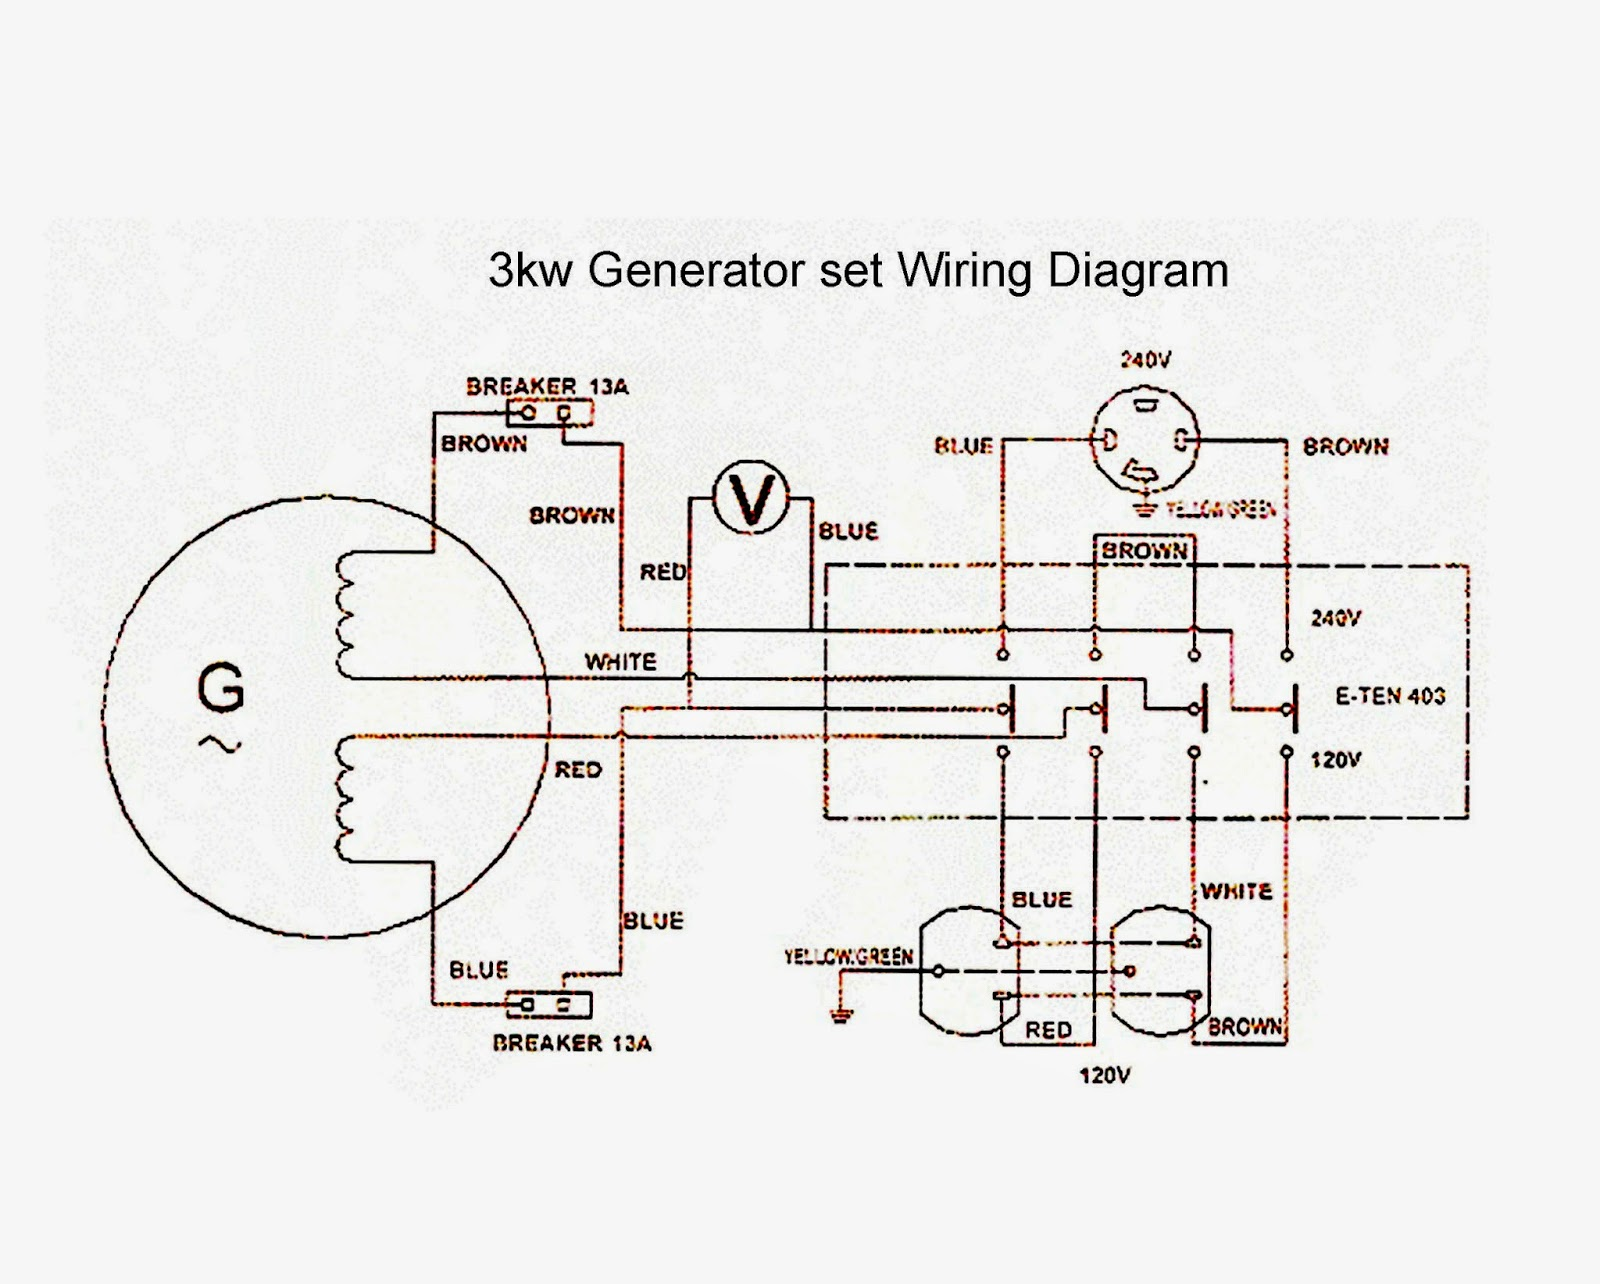 DIAGRAM] Ac Generator Wiring Diagram FULL Version HD Quality Wiring Diagram  - DIAGRAMMOI.LEIFERSTRAIL.ITDiagram Database